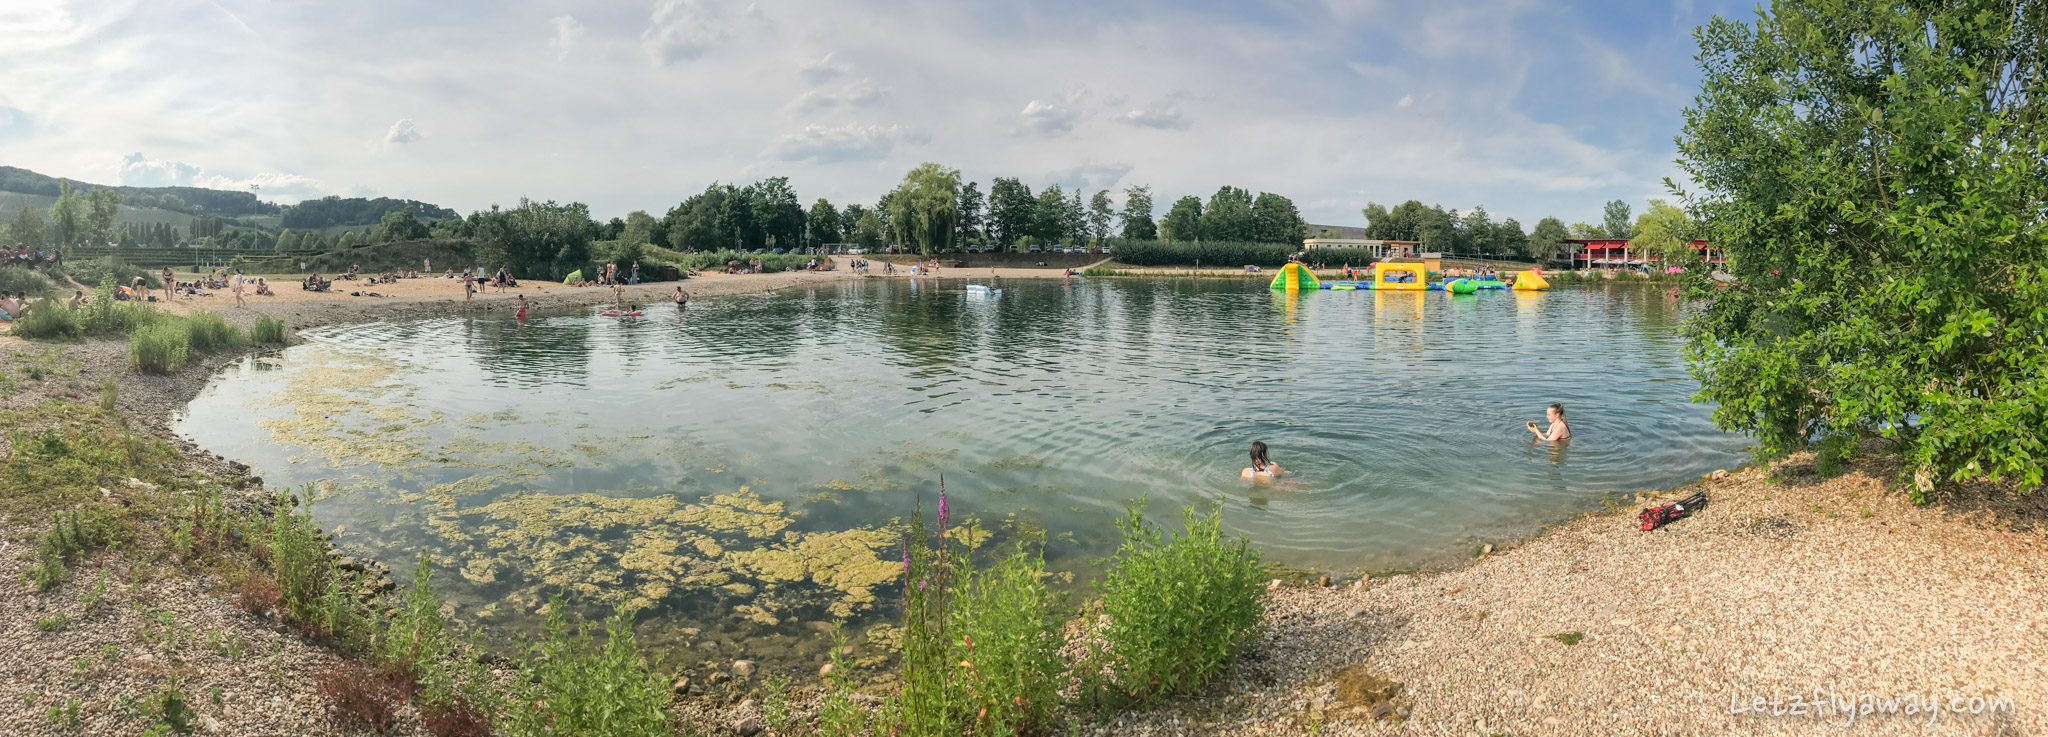 Kids Swimming In A Lake the remerschen lakes - outdoor swimming in luxembourg with kids |